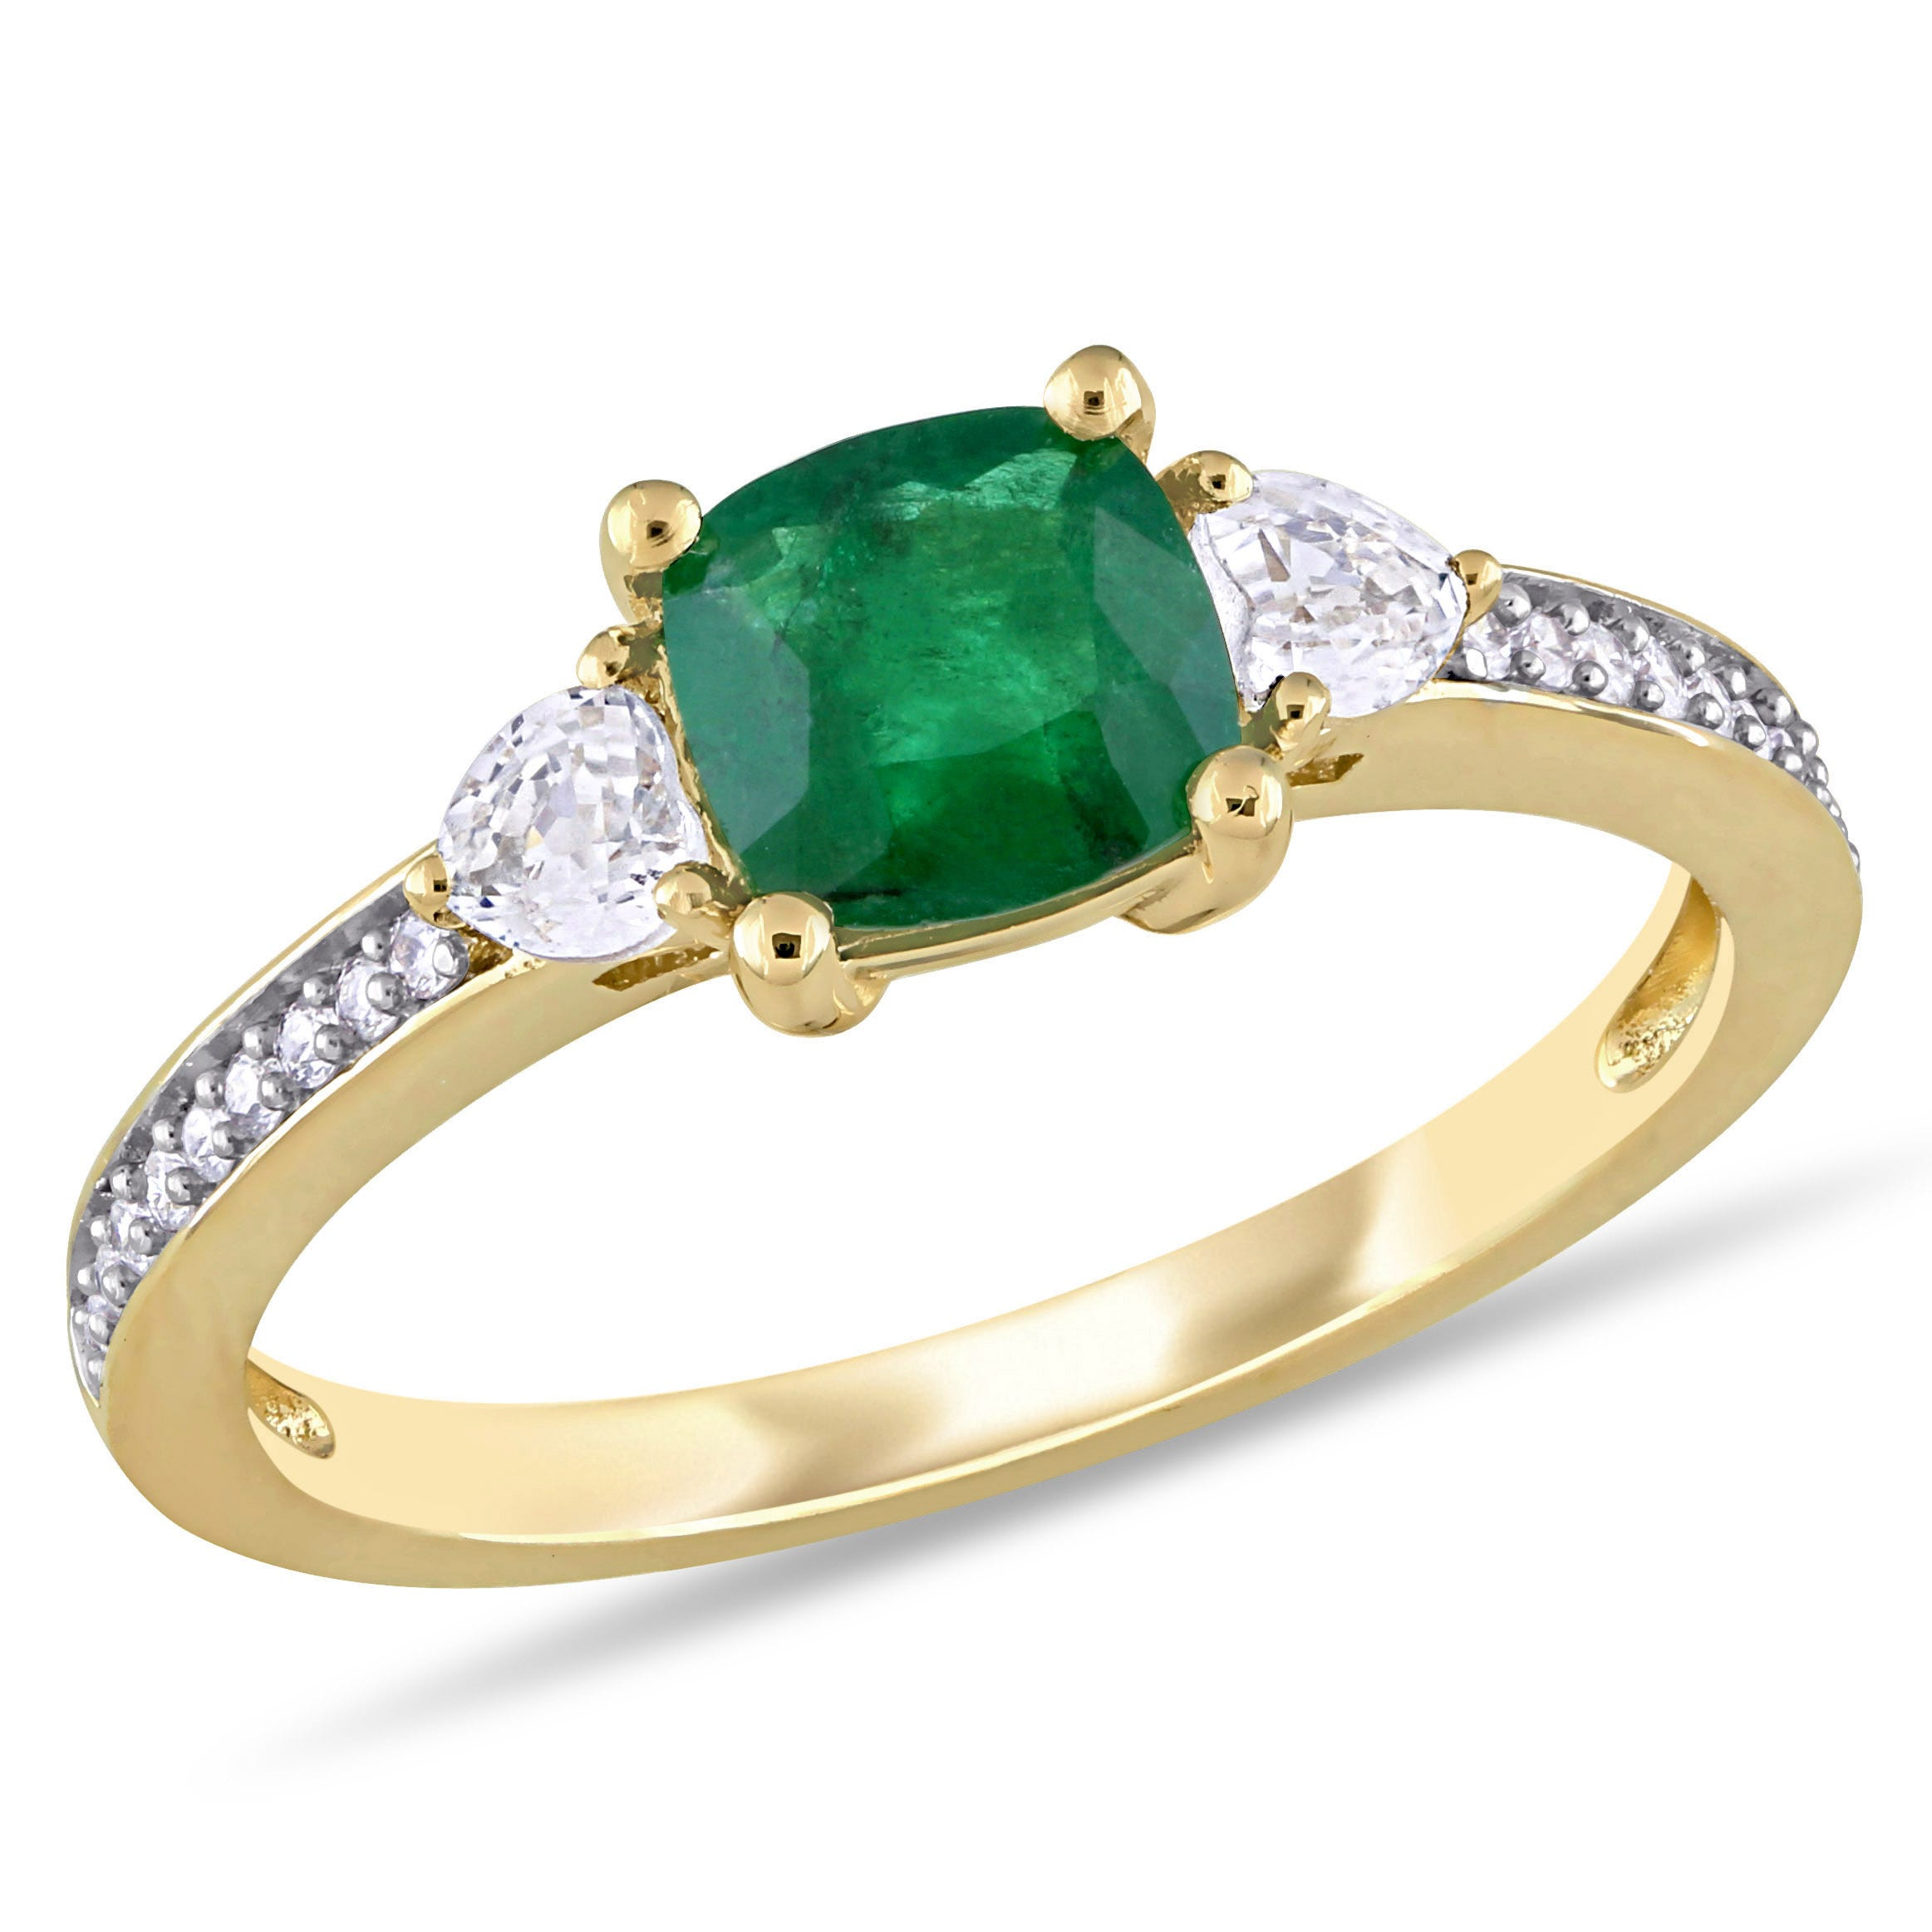 Cushion-Cut Emerald & White Sapphire Diamond Ring in 14k Yellow Gold